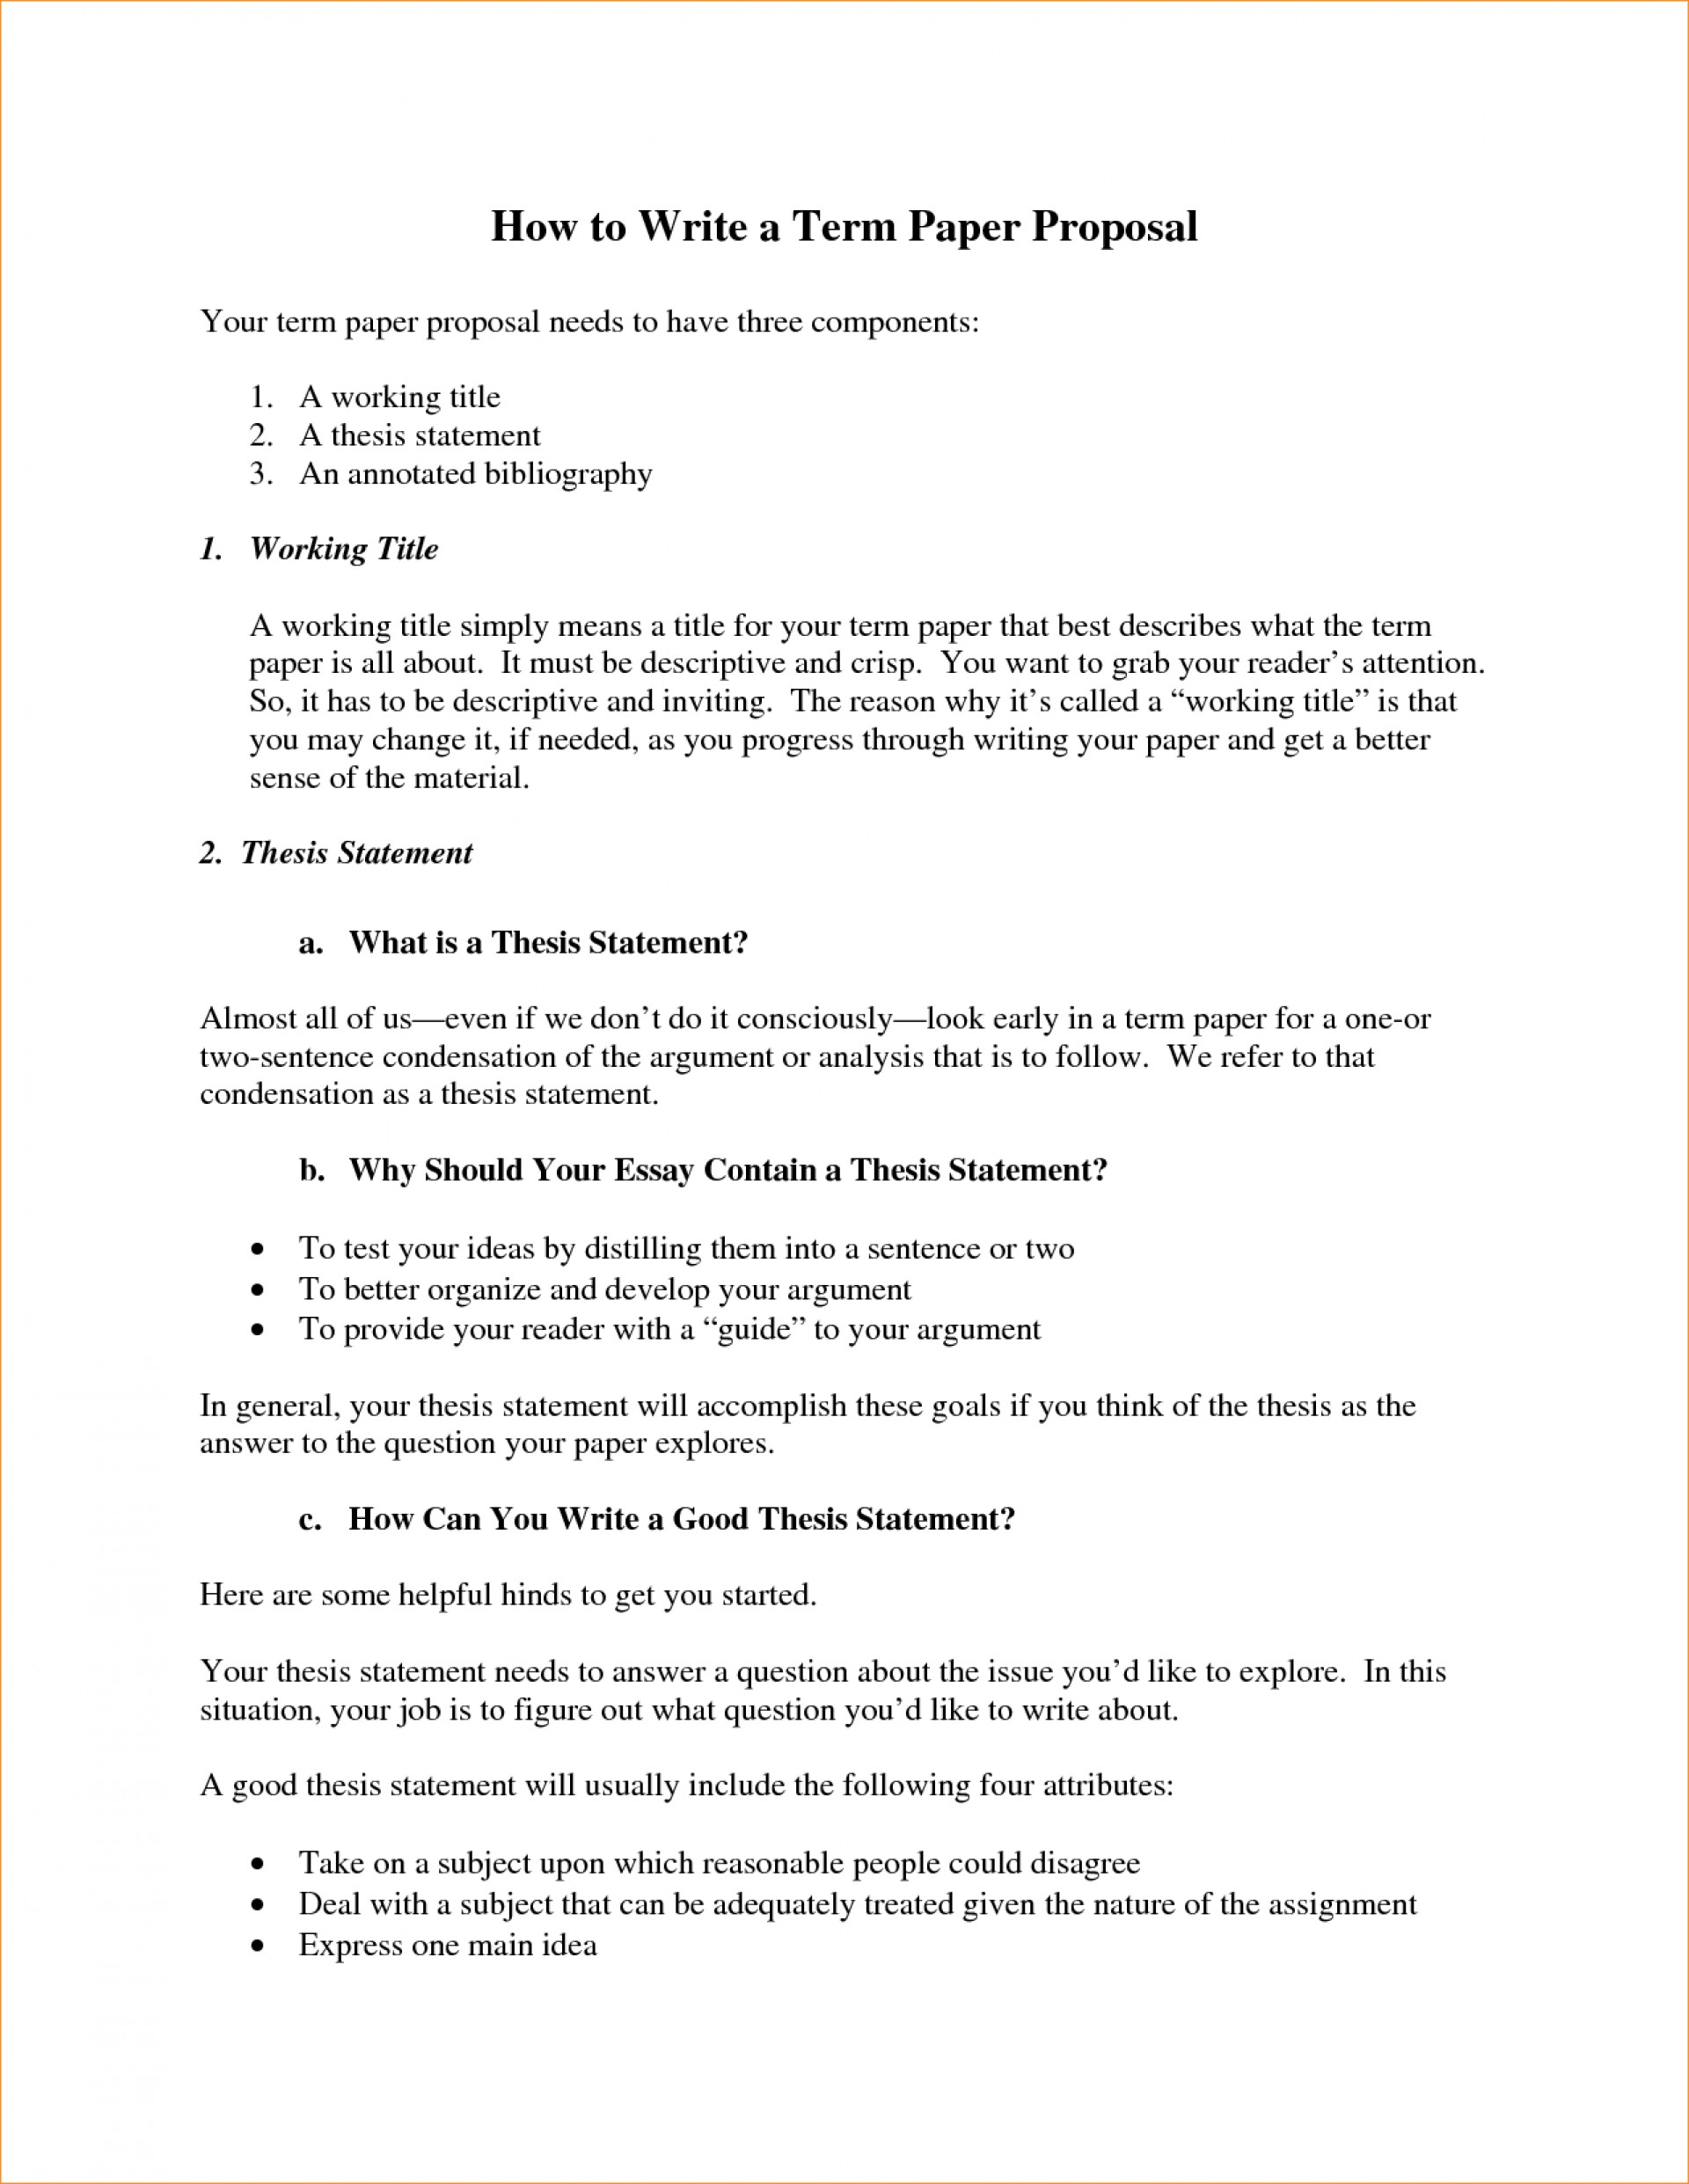 009 How To Write Proposal An Essay Shocking Example For History Mla 1920